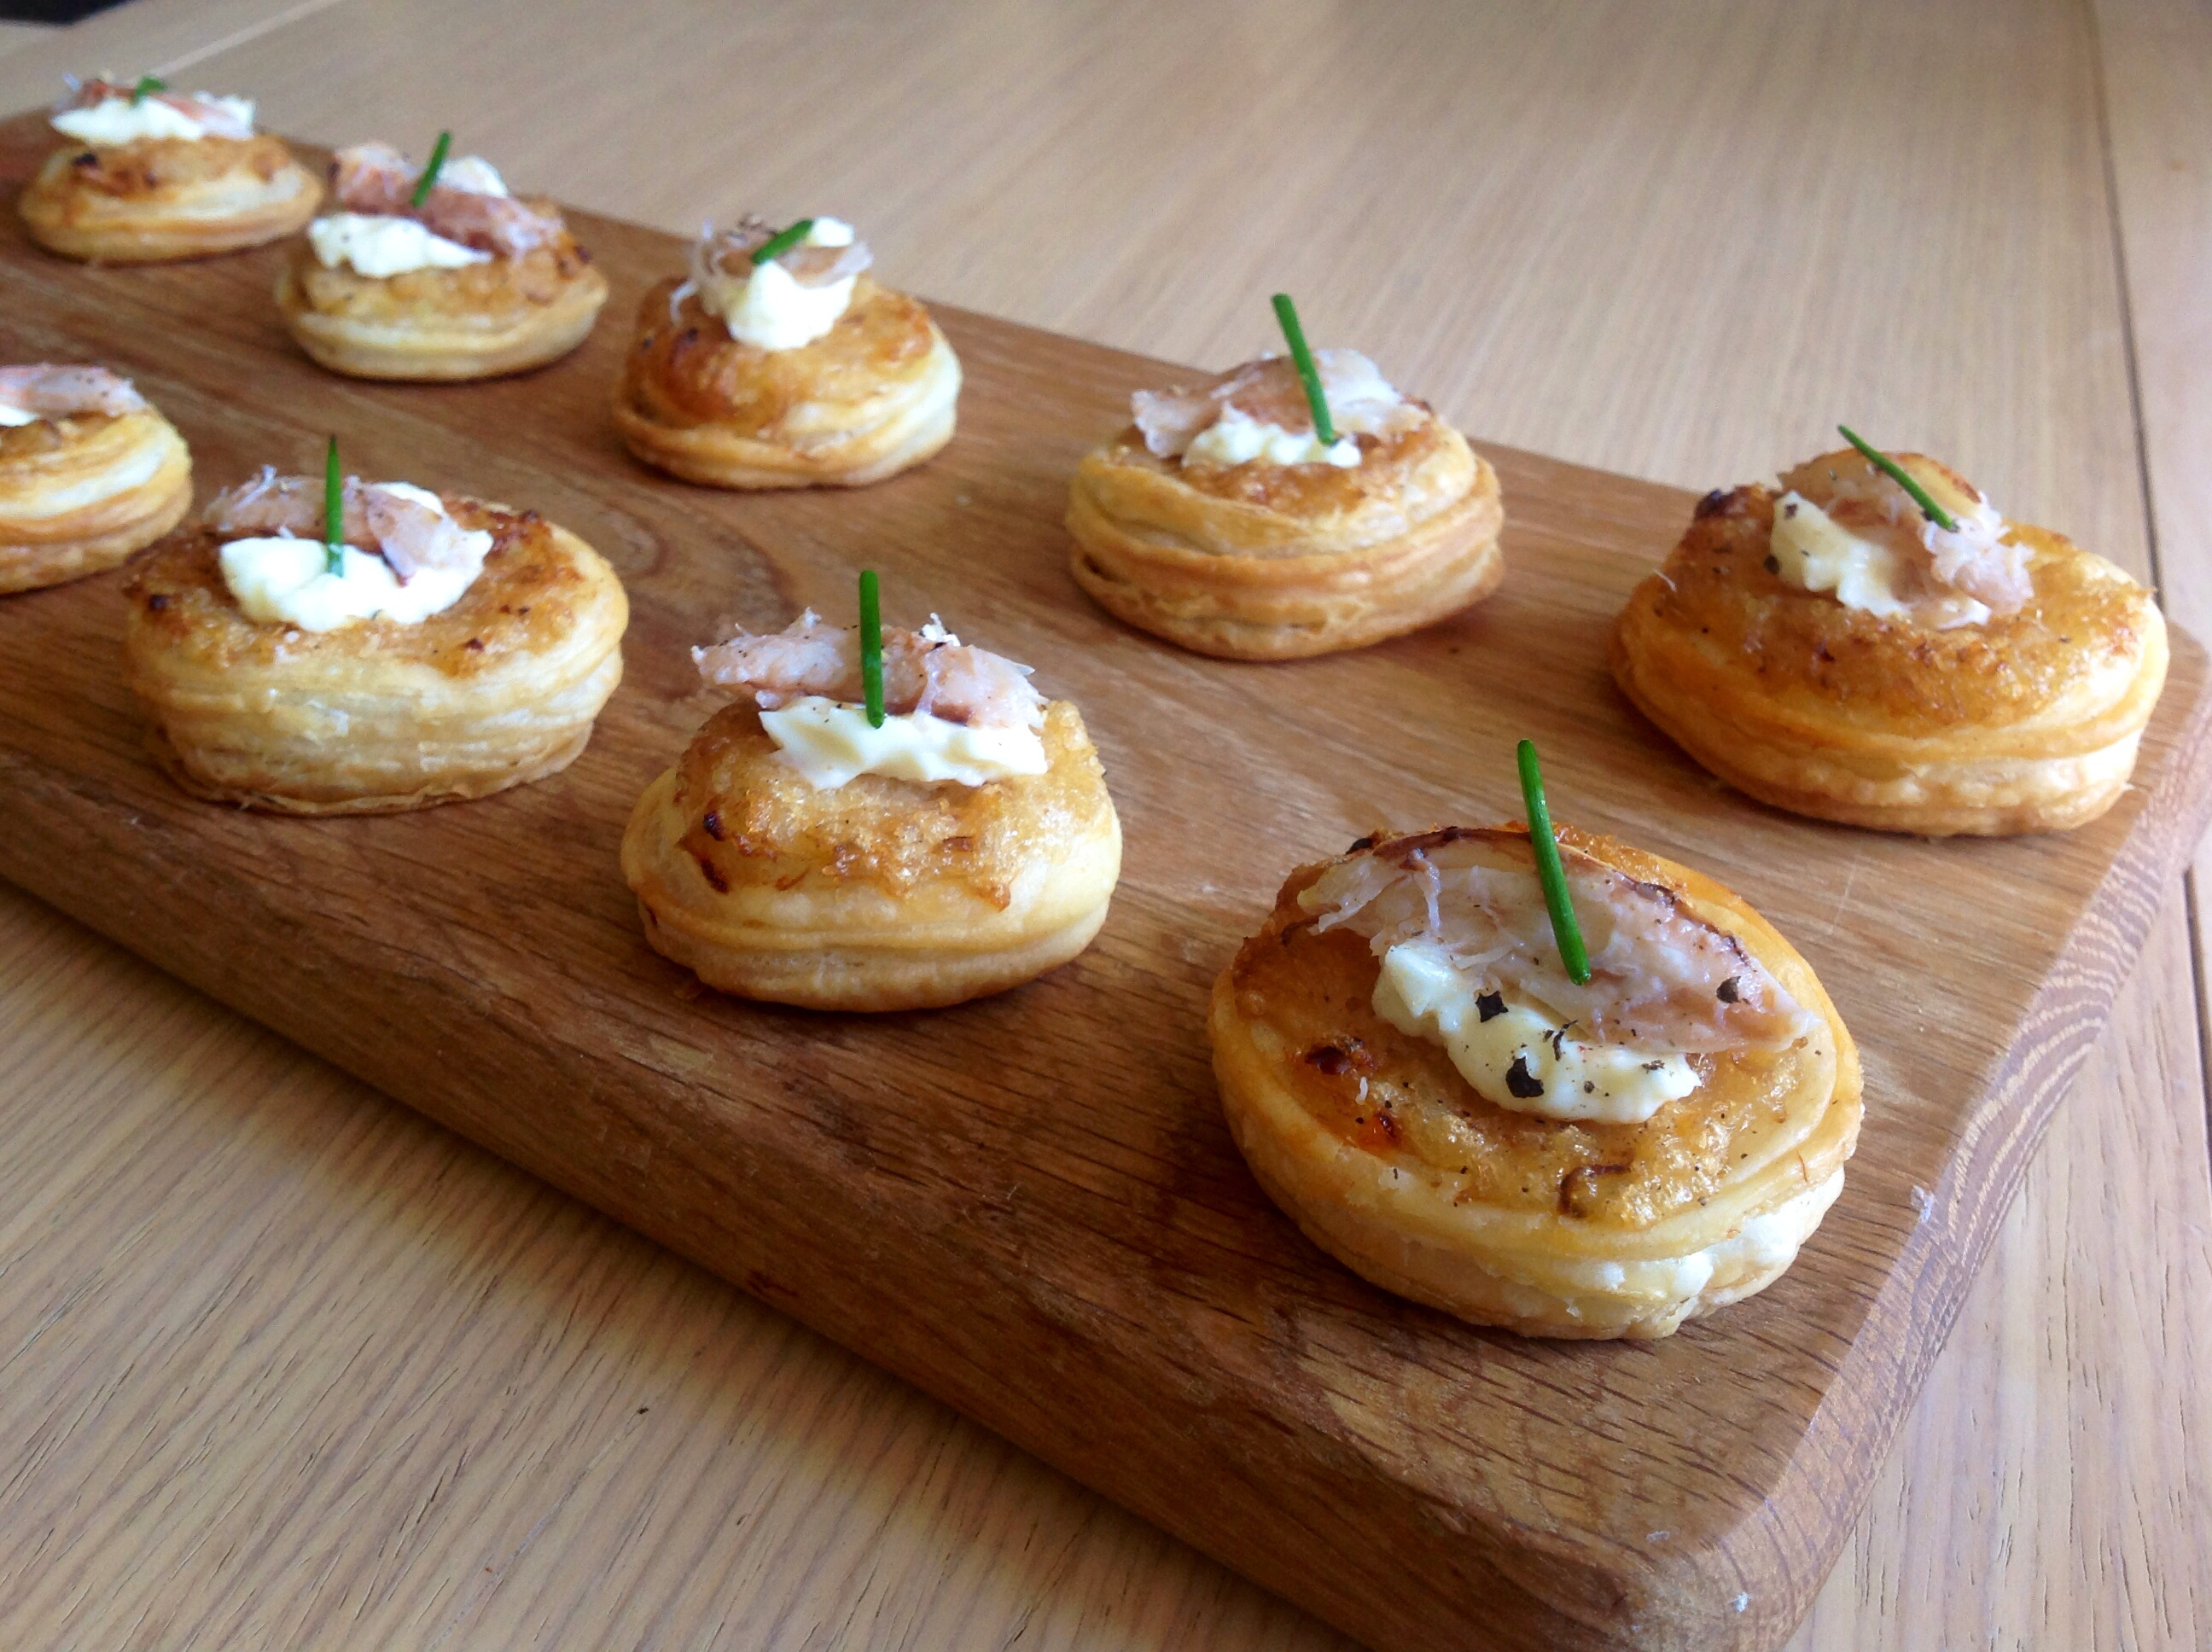 Savoury nibbles canap s bakingfanatic for Canape shells